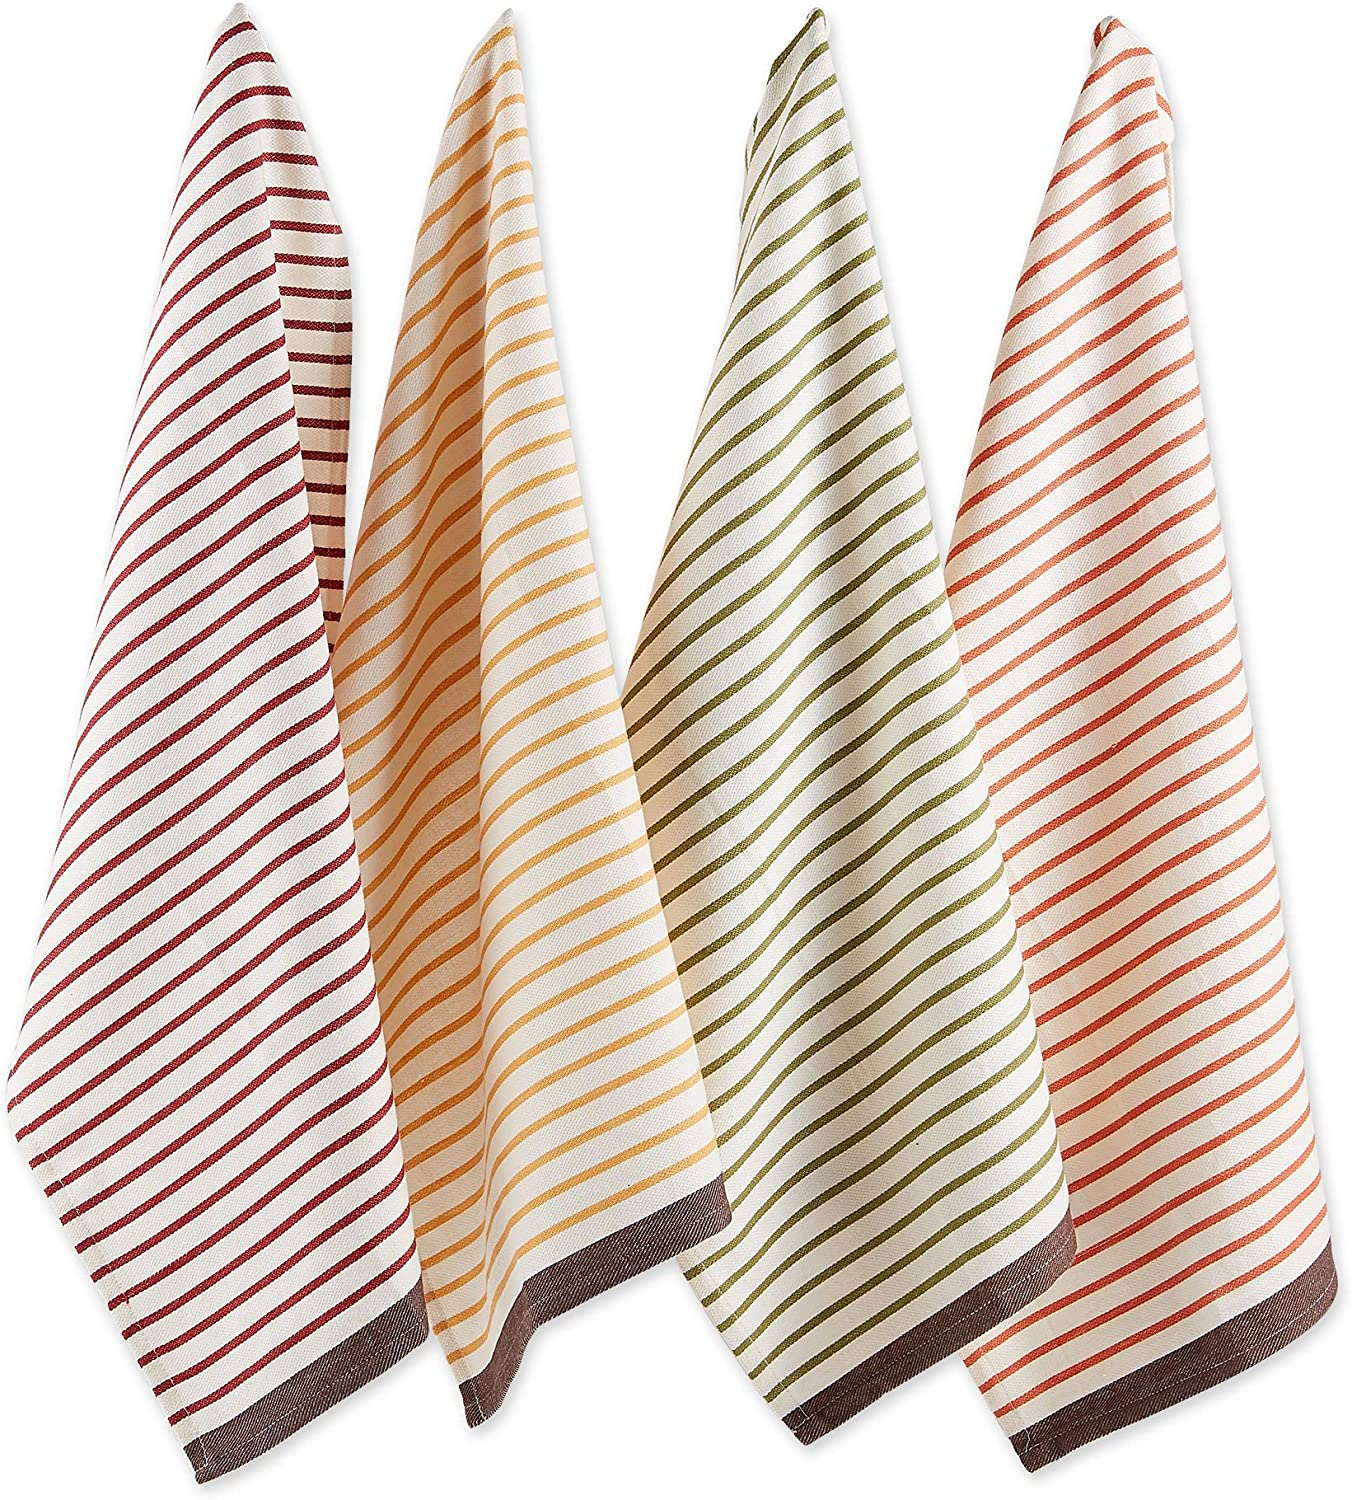 DII Cotton Heavyweight Dish Towels Kitchen Gift, 18x28